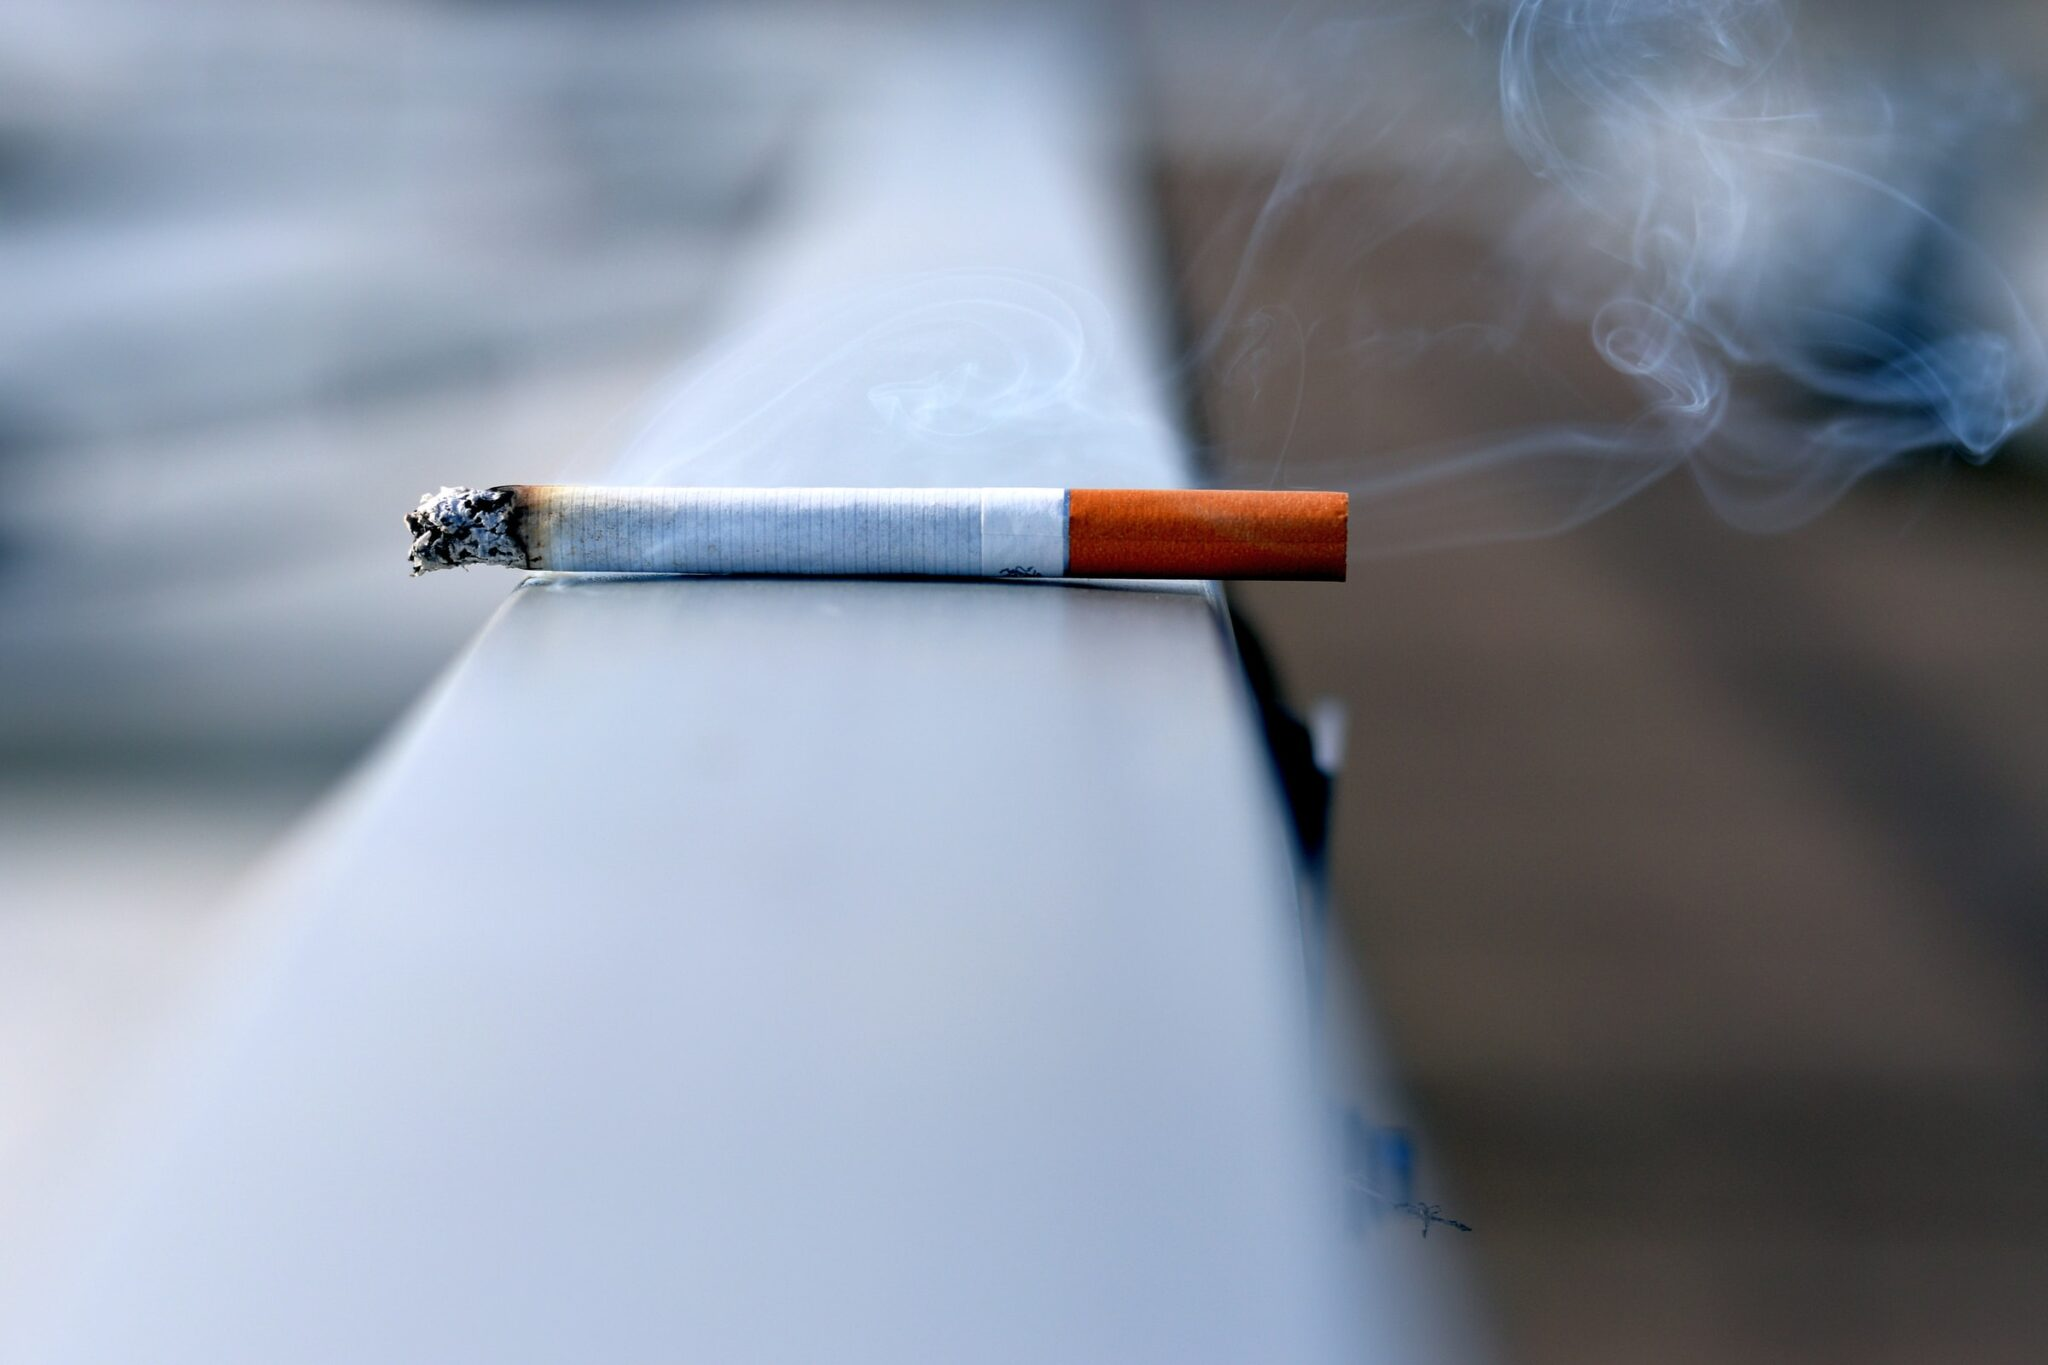 Tobacco use declining among Aboriginal and Torres Strait Islander people